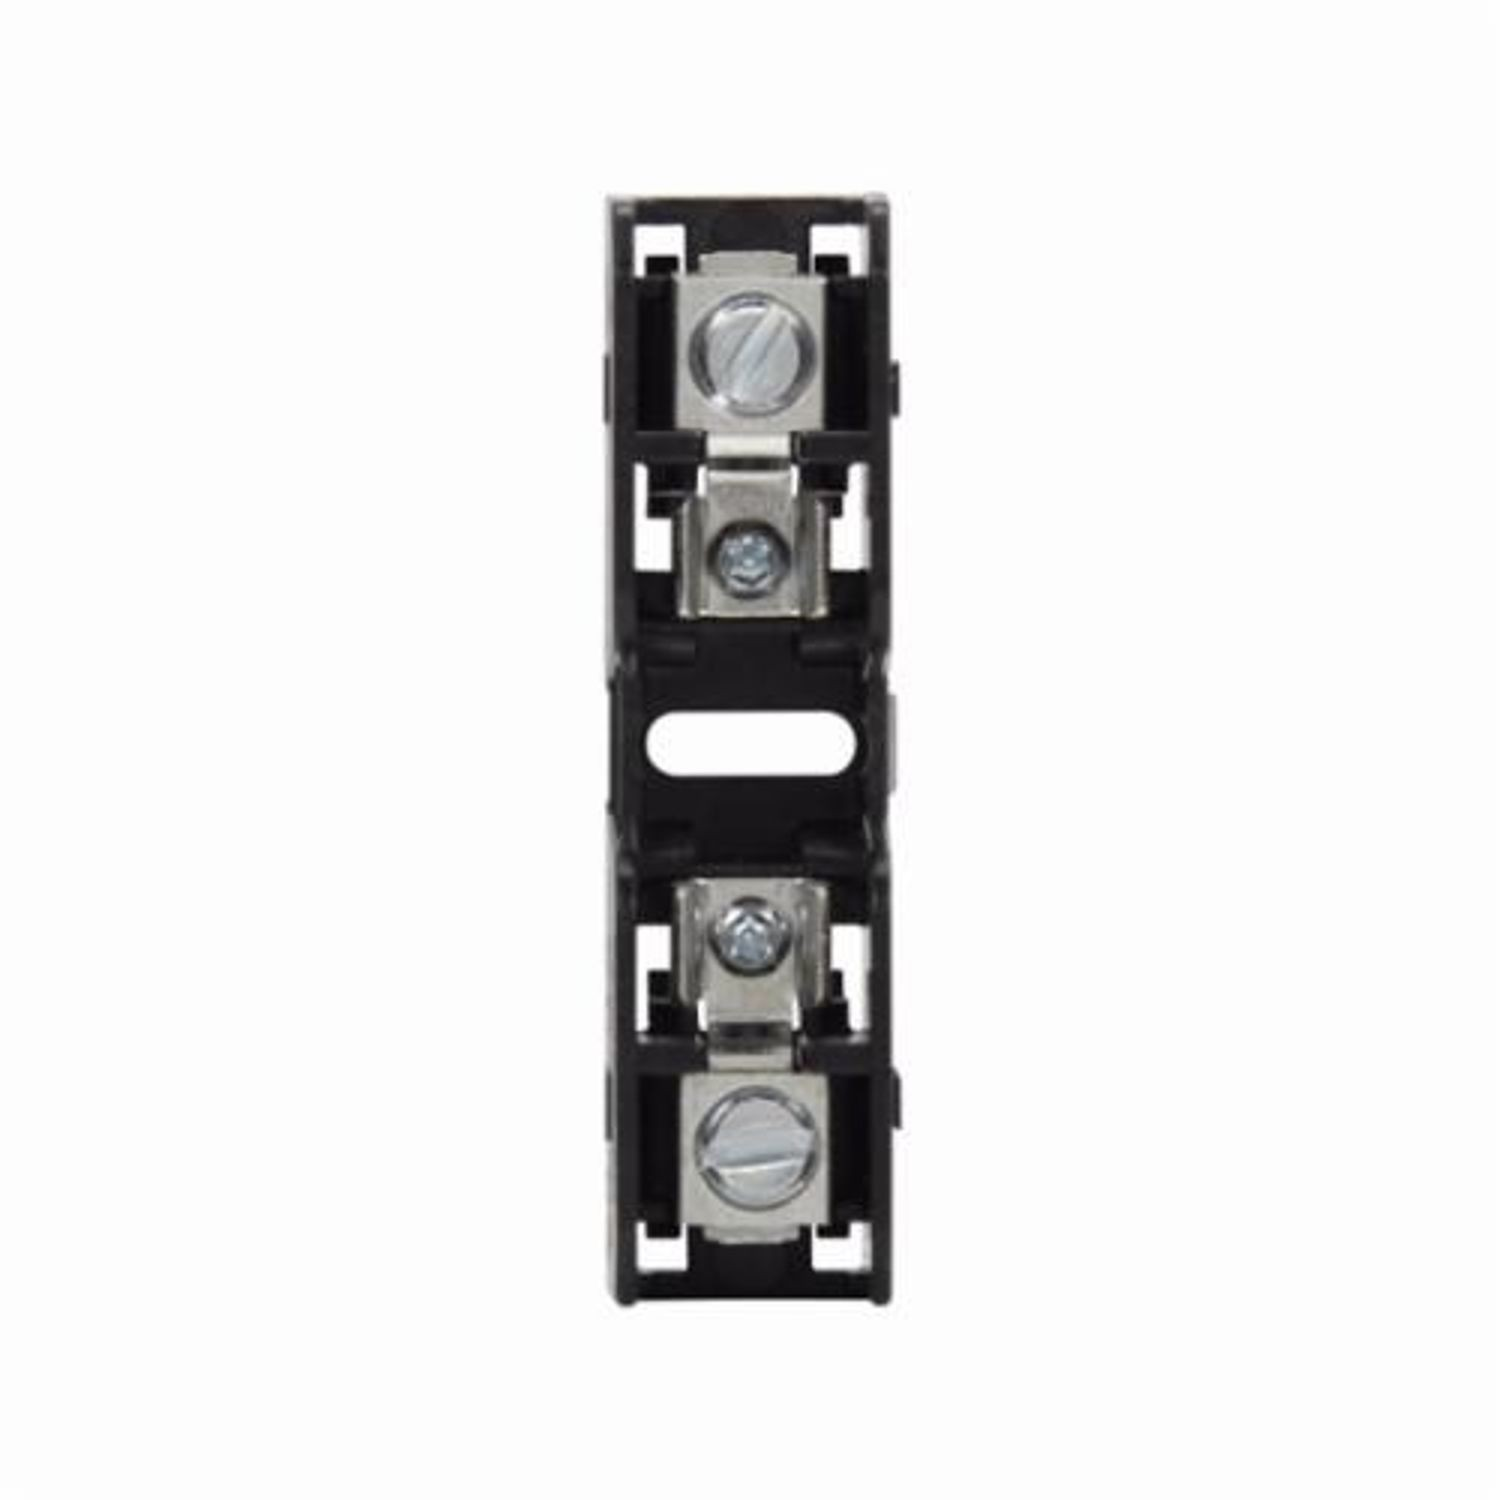 bussmann� bmm603-1c supplementary fuse block, 600 vac, 30 a, 14 to 2 awg  copper, 8 to 2 awg aluminum wire, 1 pole | state electric